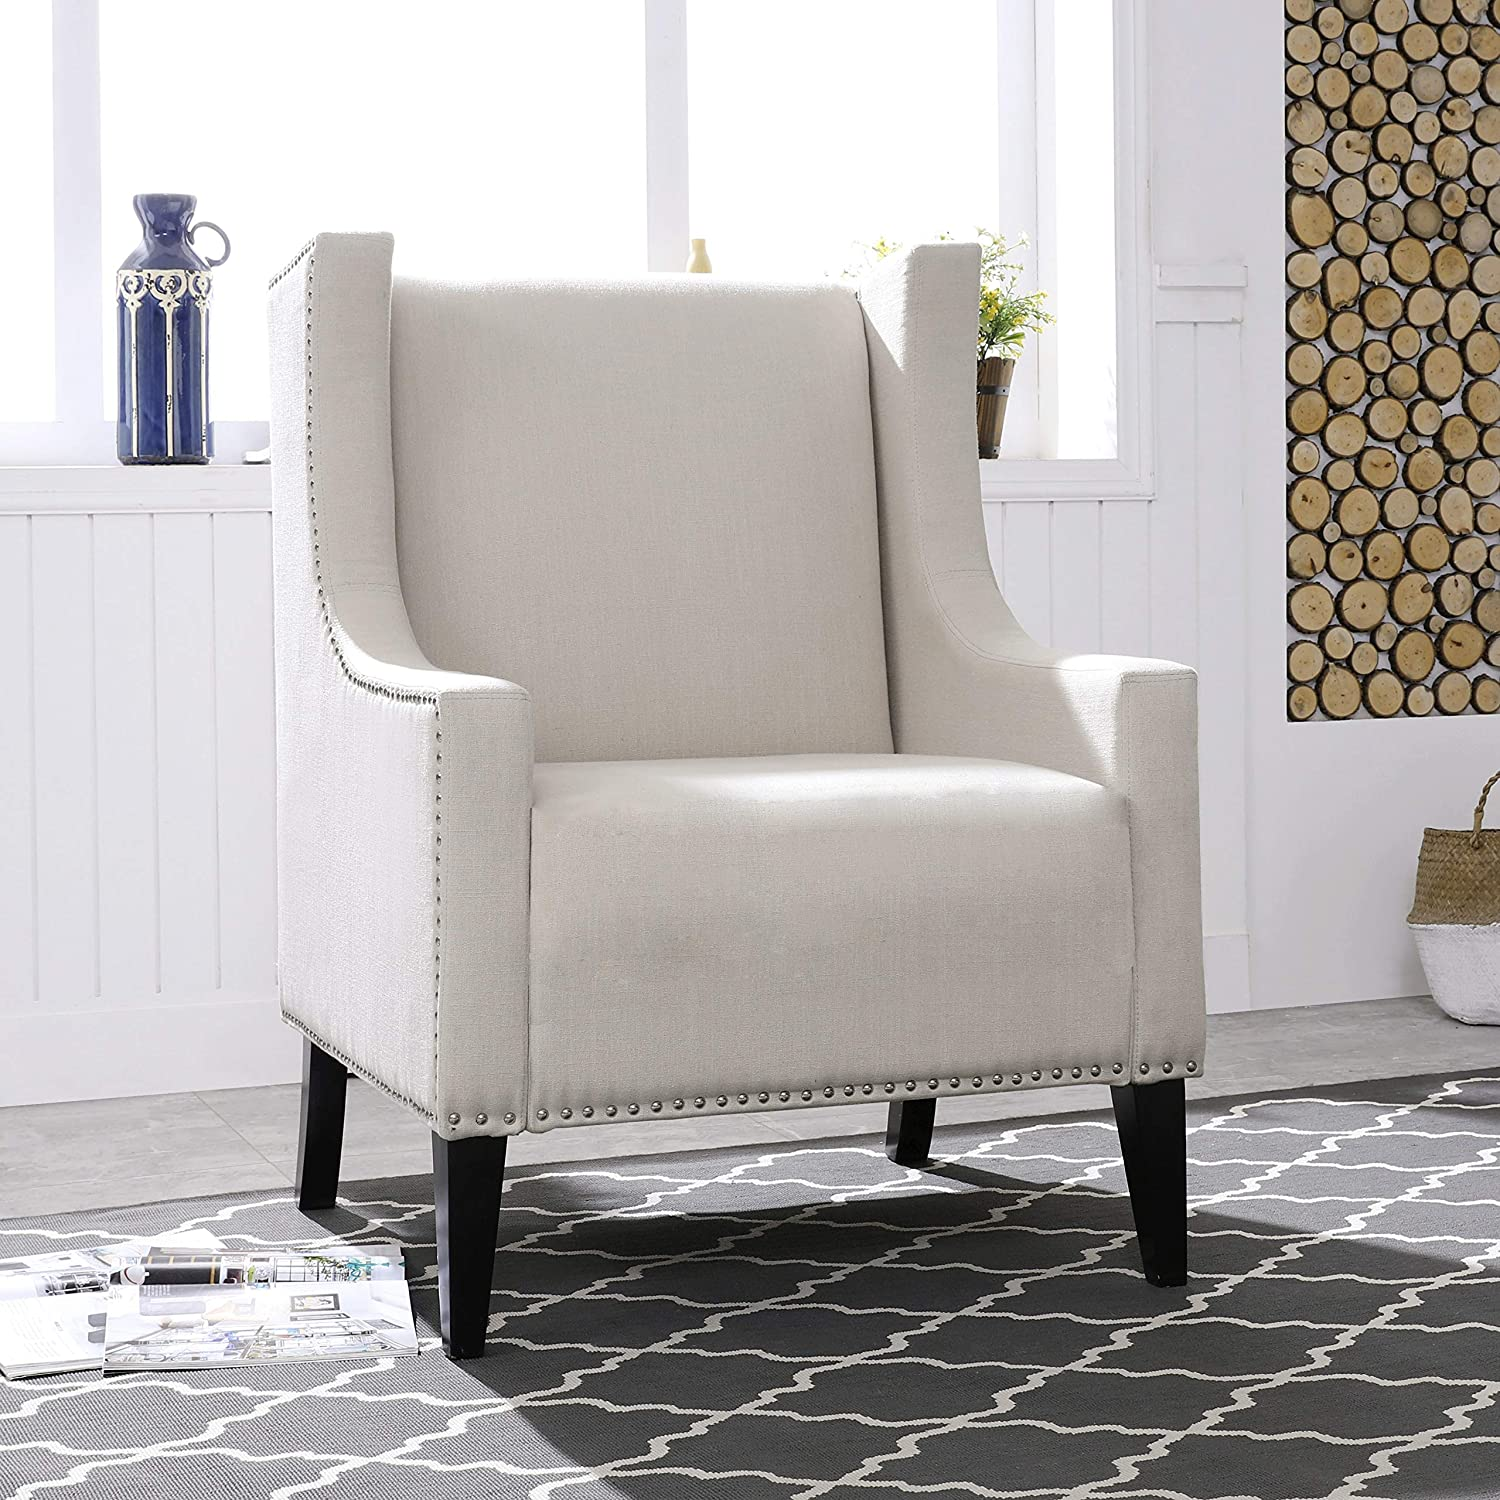 """LOKATSE HOME Modern Accent Fabric Arm Chair, Linen Upholstered Single Sofa with Solid Wood Legs for Living Room, Bedroom, 31.1""""x31.1""""x36.8"""", Beige"""